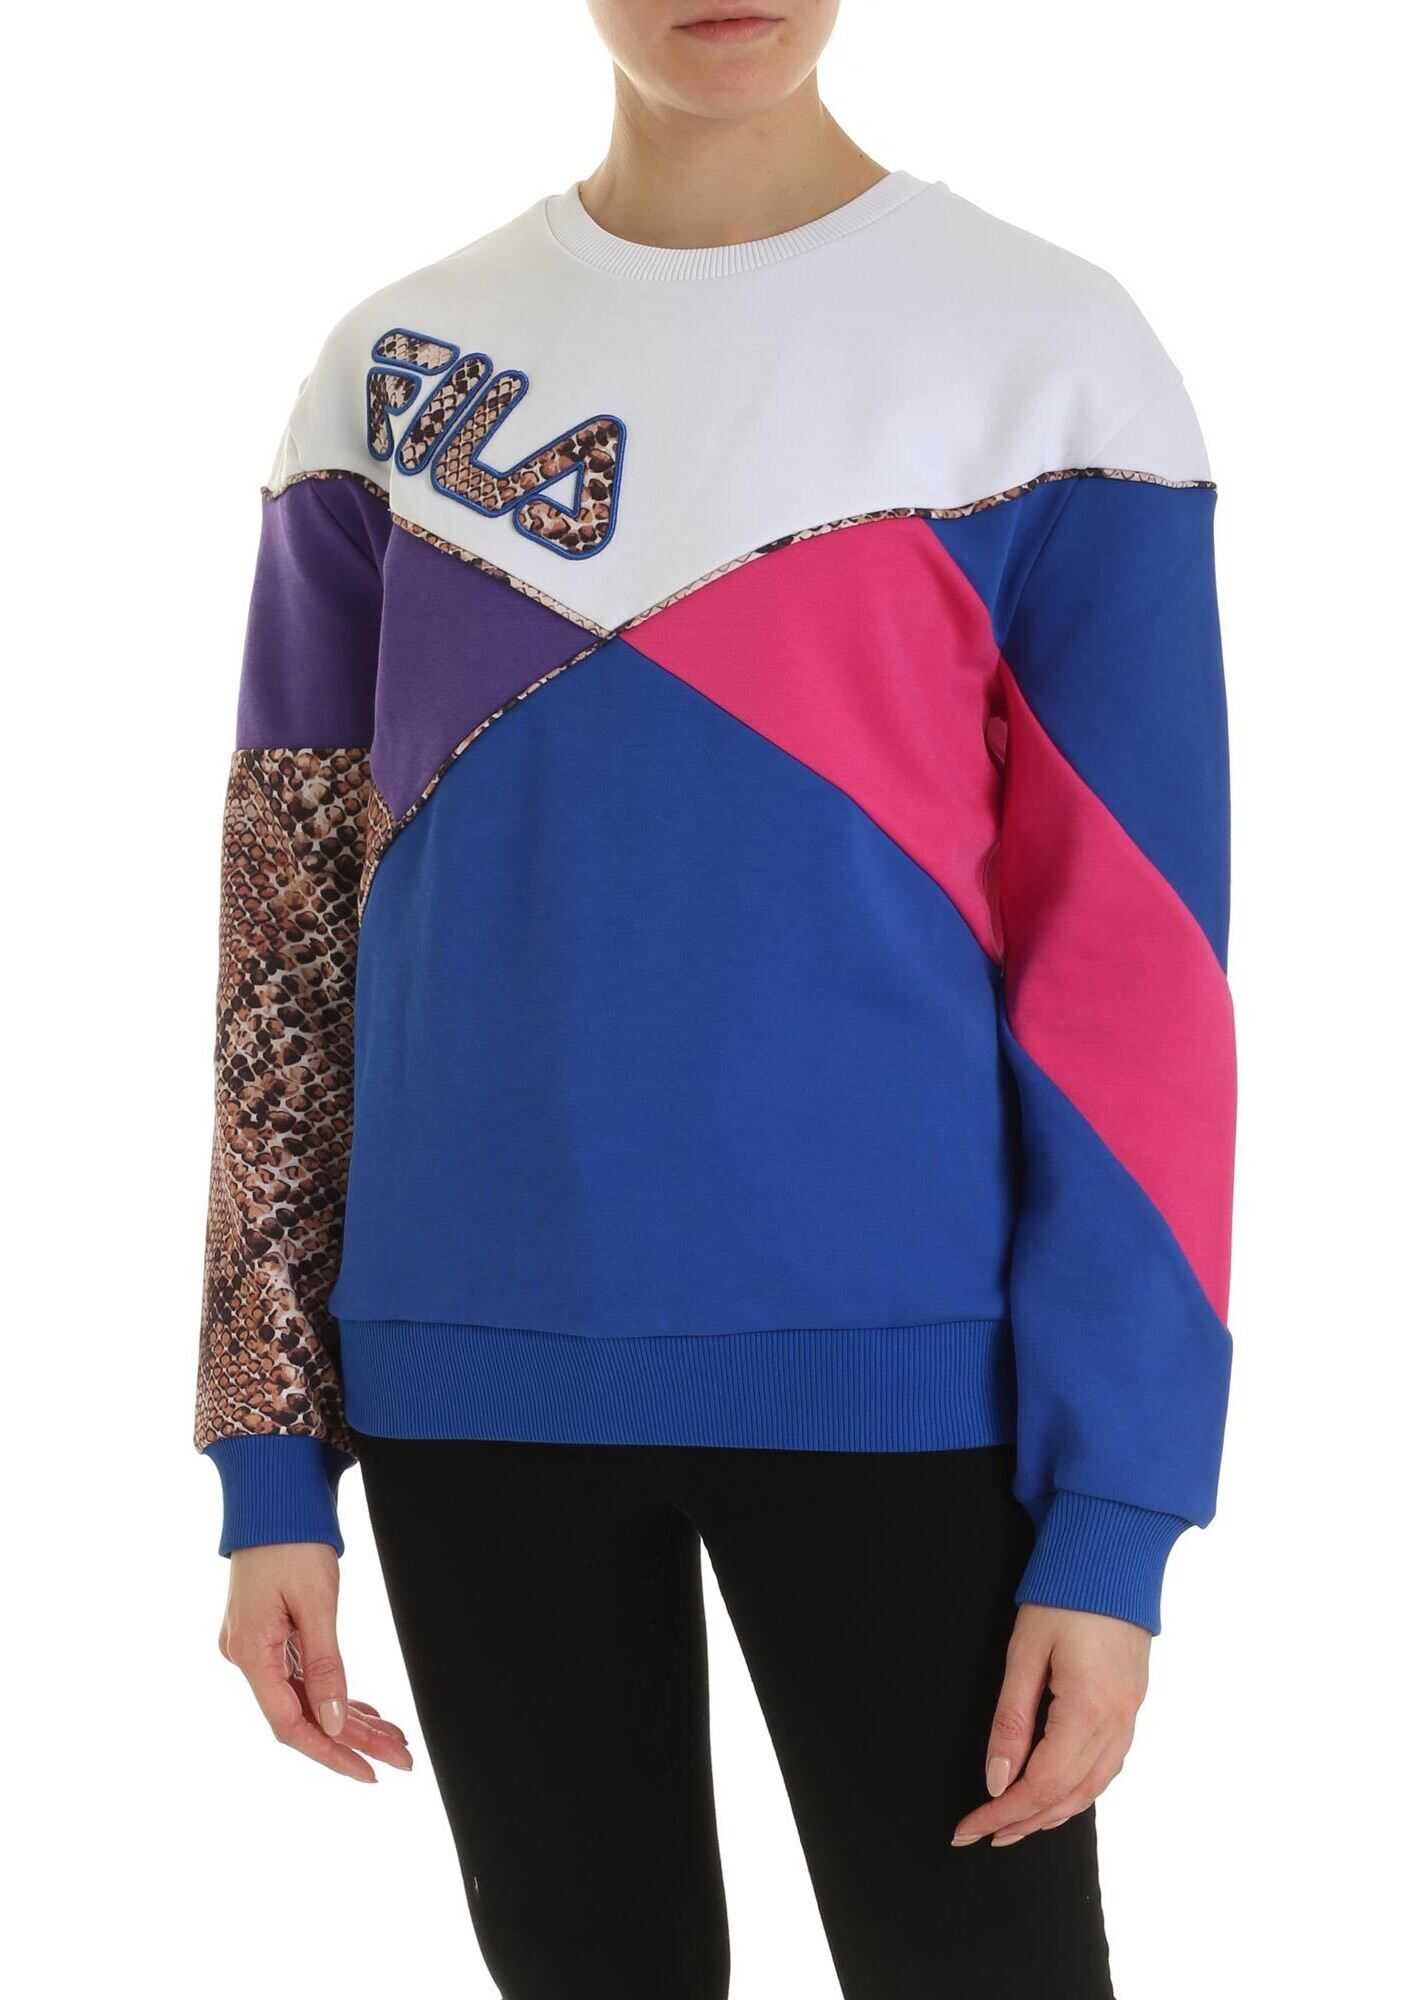 Fila Kana Electric Blue Sweatshirt With Print Logo White